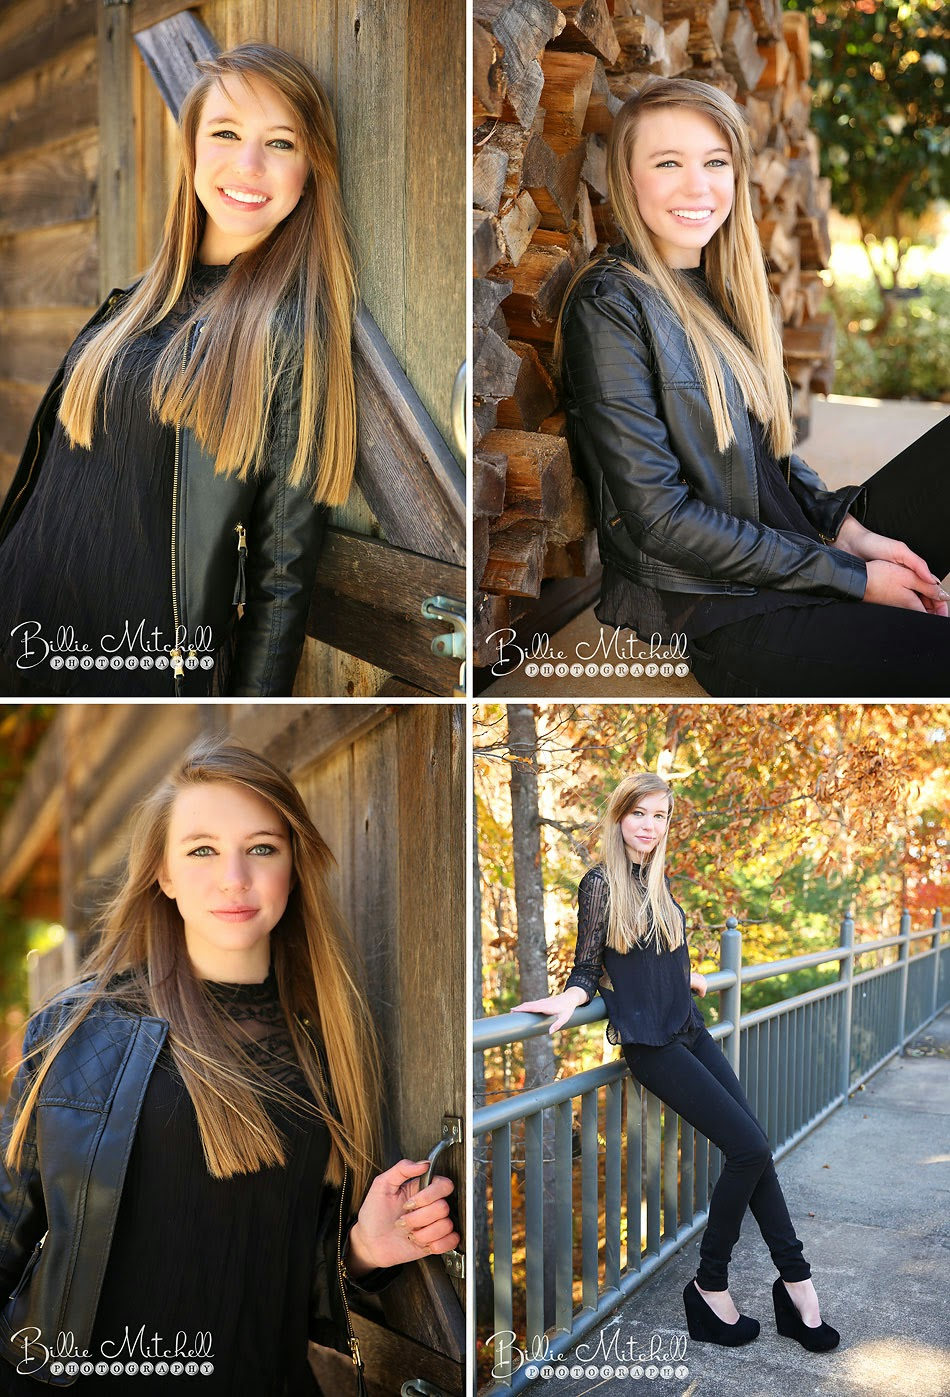 teen girl with long blonde hair wearing black leather jacket, black flowy shirt, black jeans, and black heals